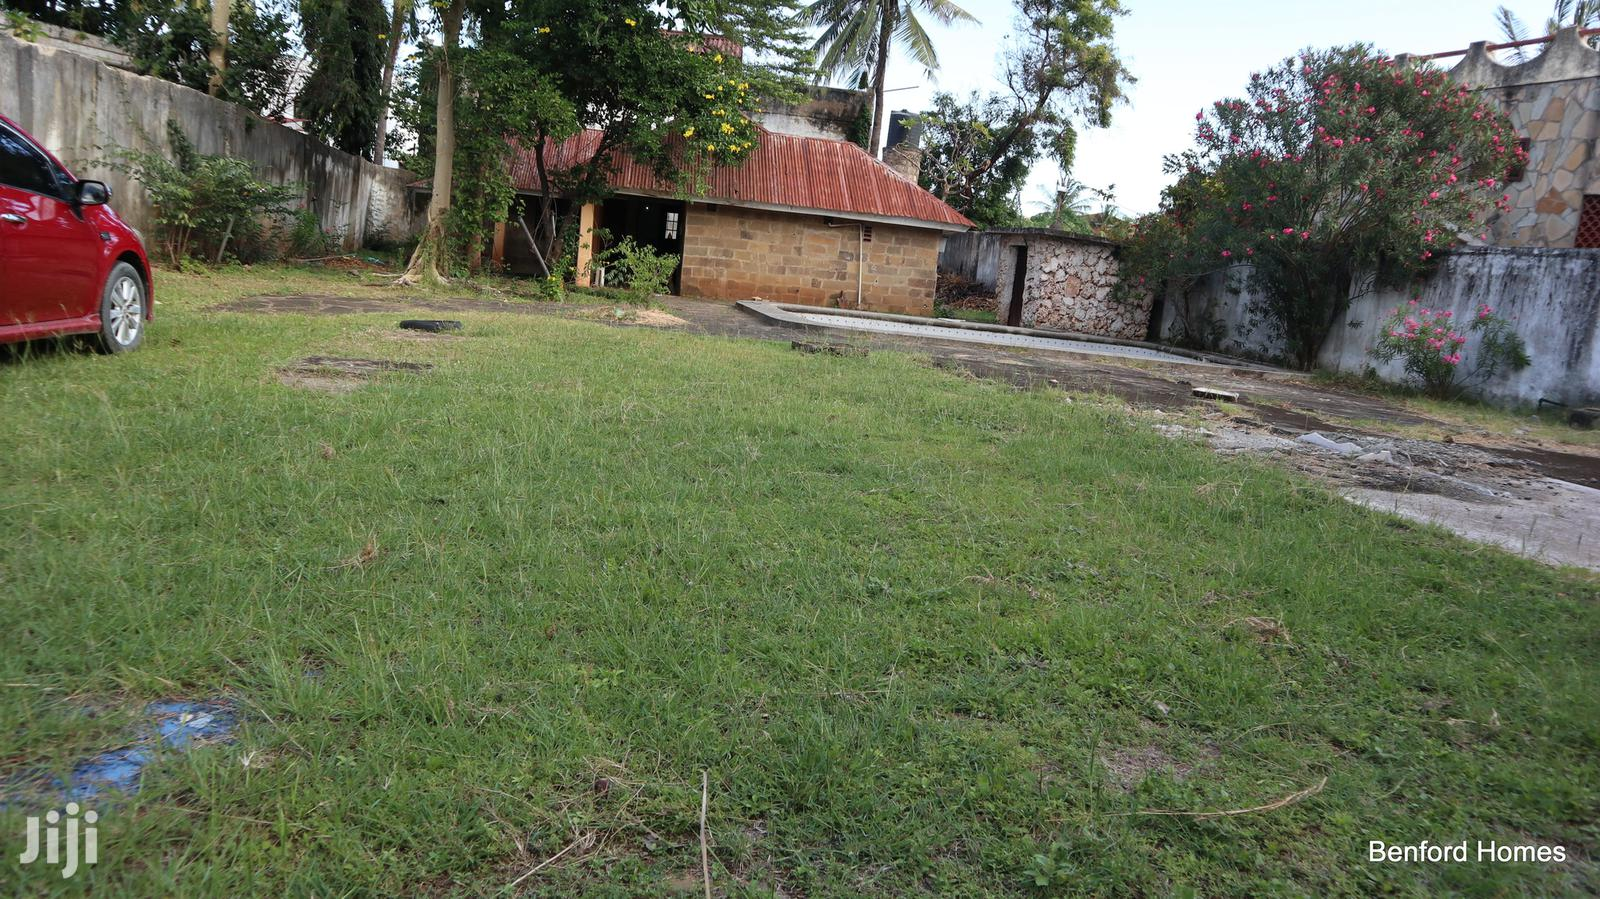 Quarter Acre On Sale City Mall Nyali/Benford Homes | Land & Plots For Sale for sale in Nyali, Mombasa, Kenya